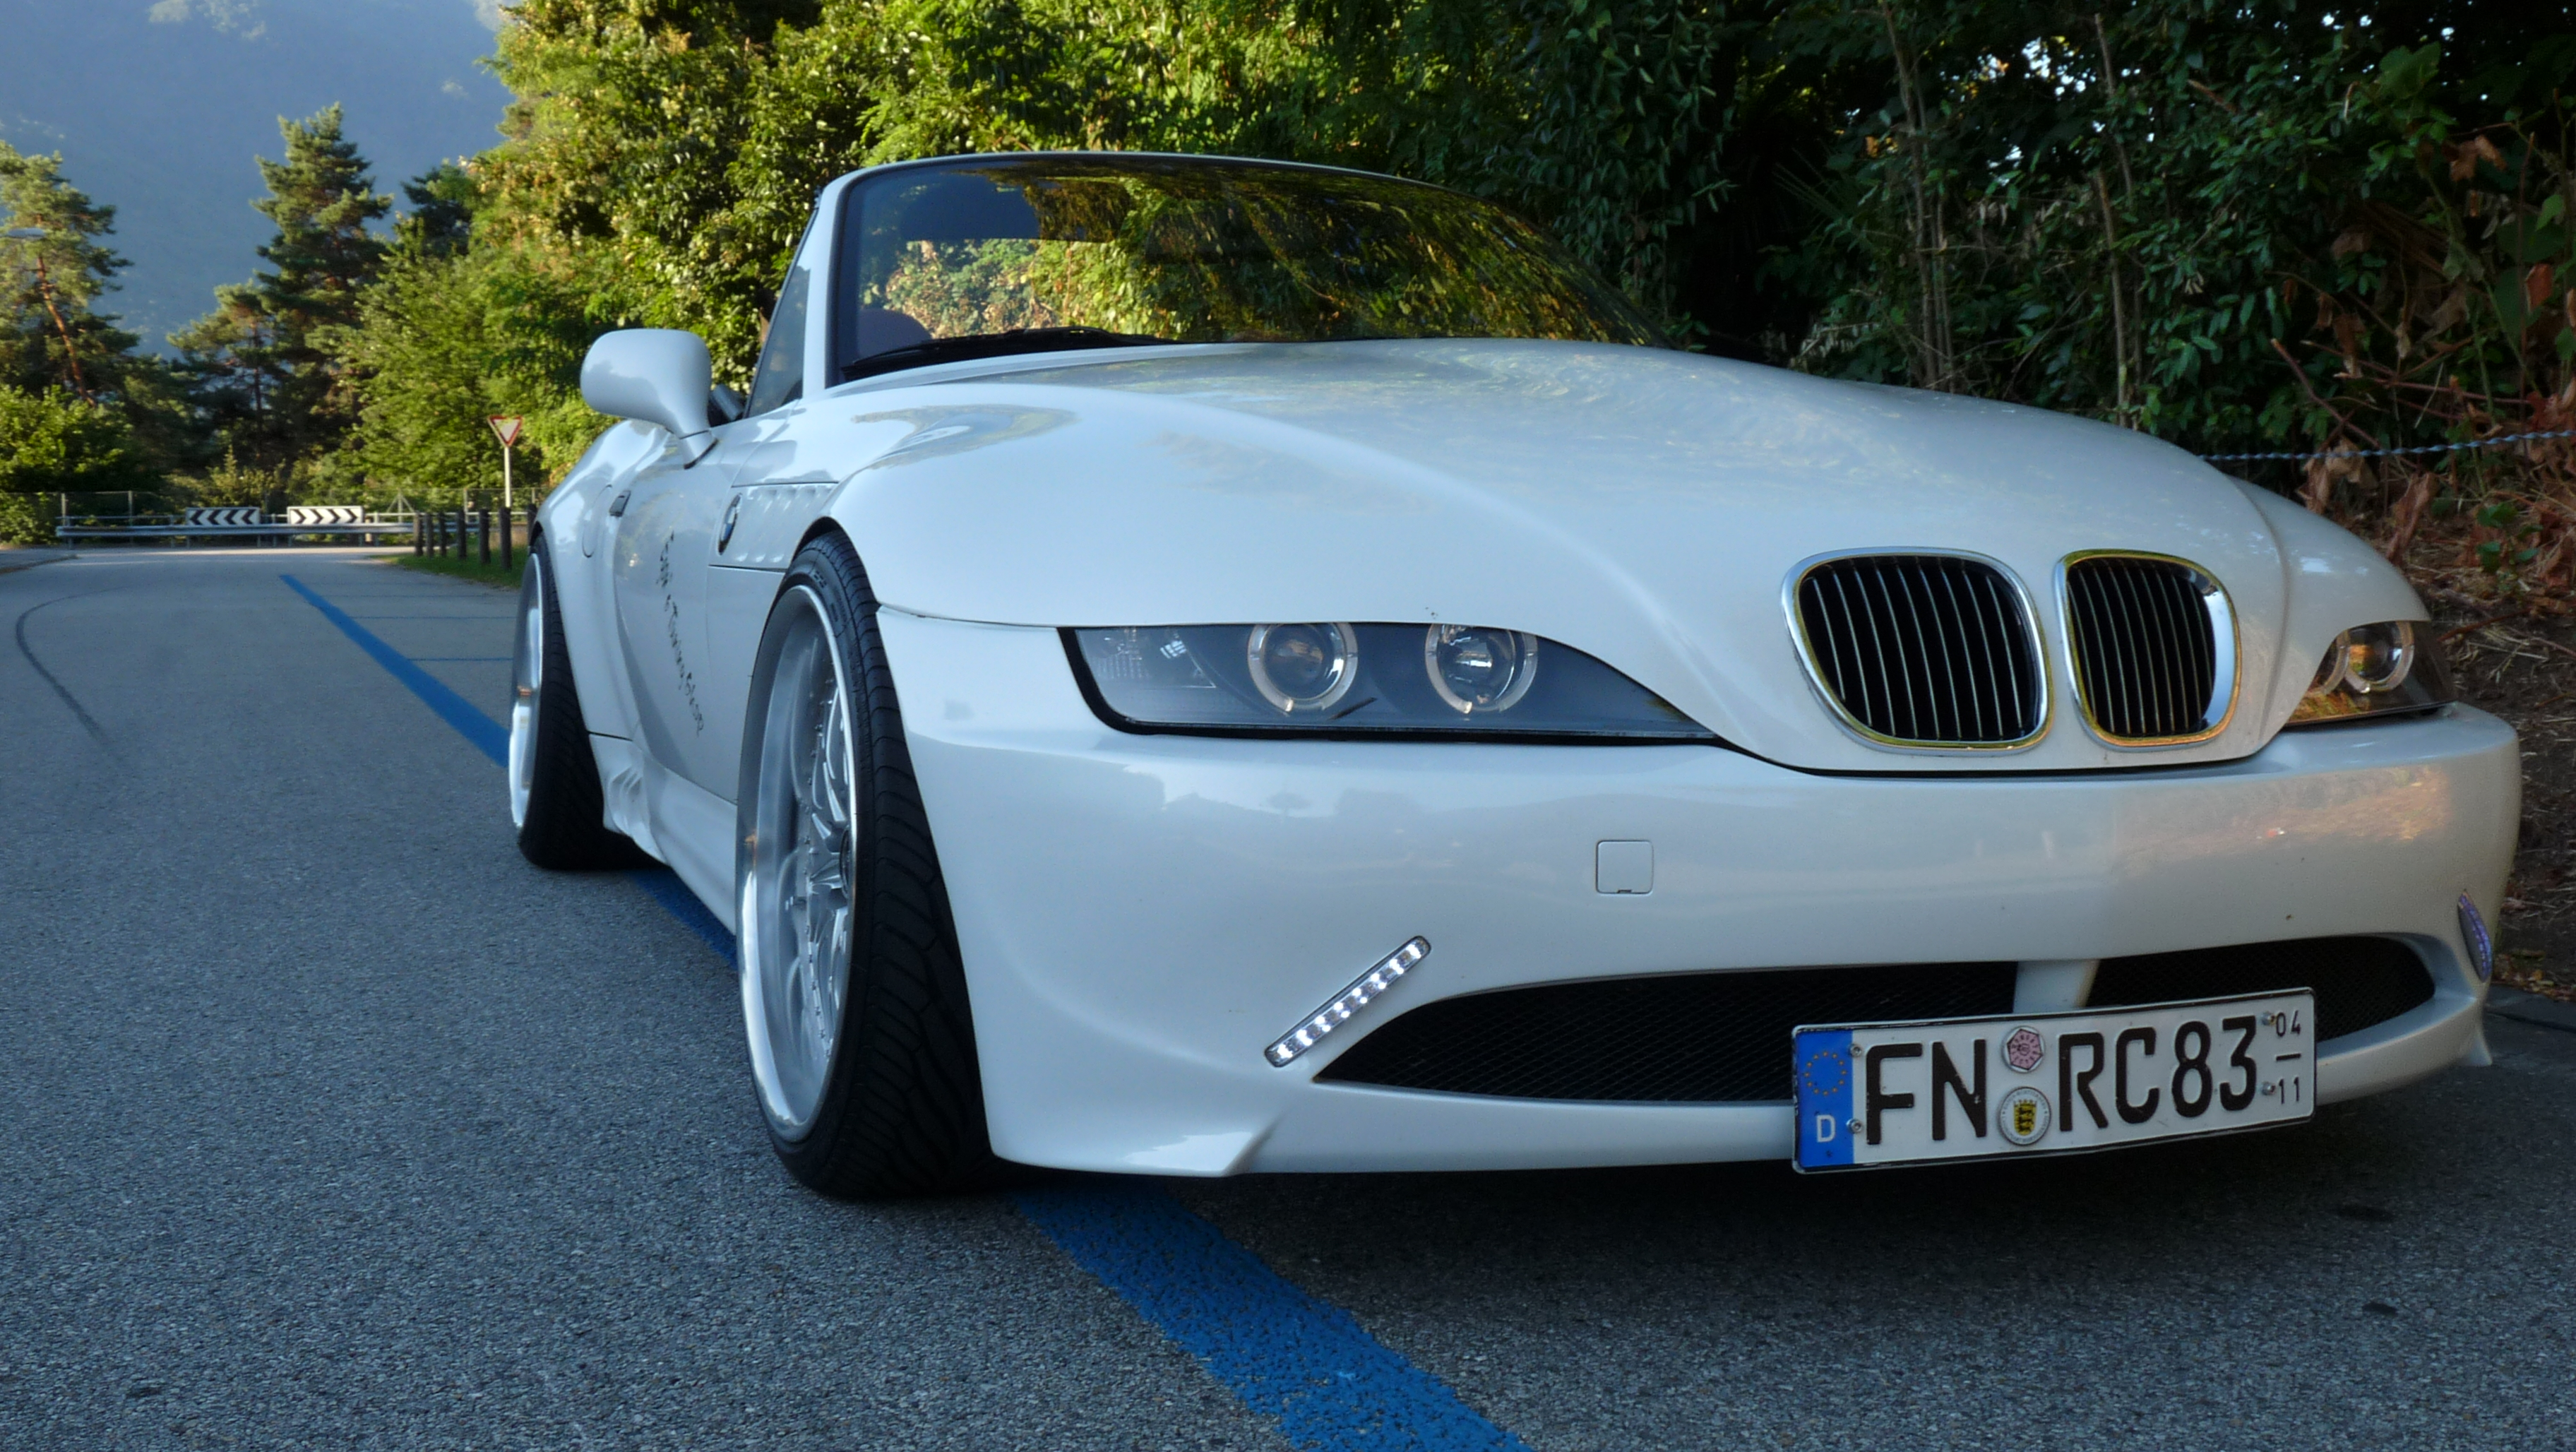 Z3 White Pearl Bmw Z1 Z3 Z4 Z8 Quot Z3 Roadster Quot Tuning Fotos Bilder Stories